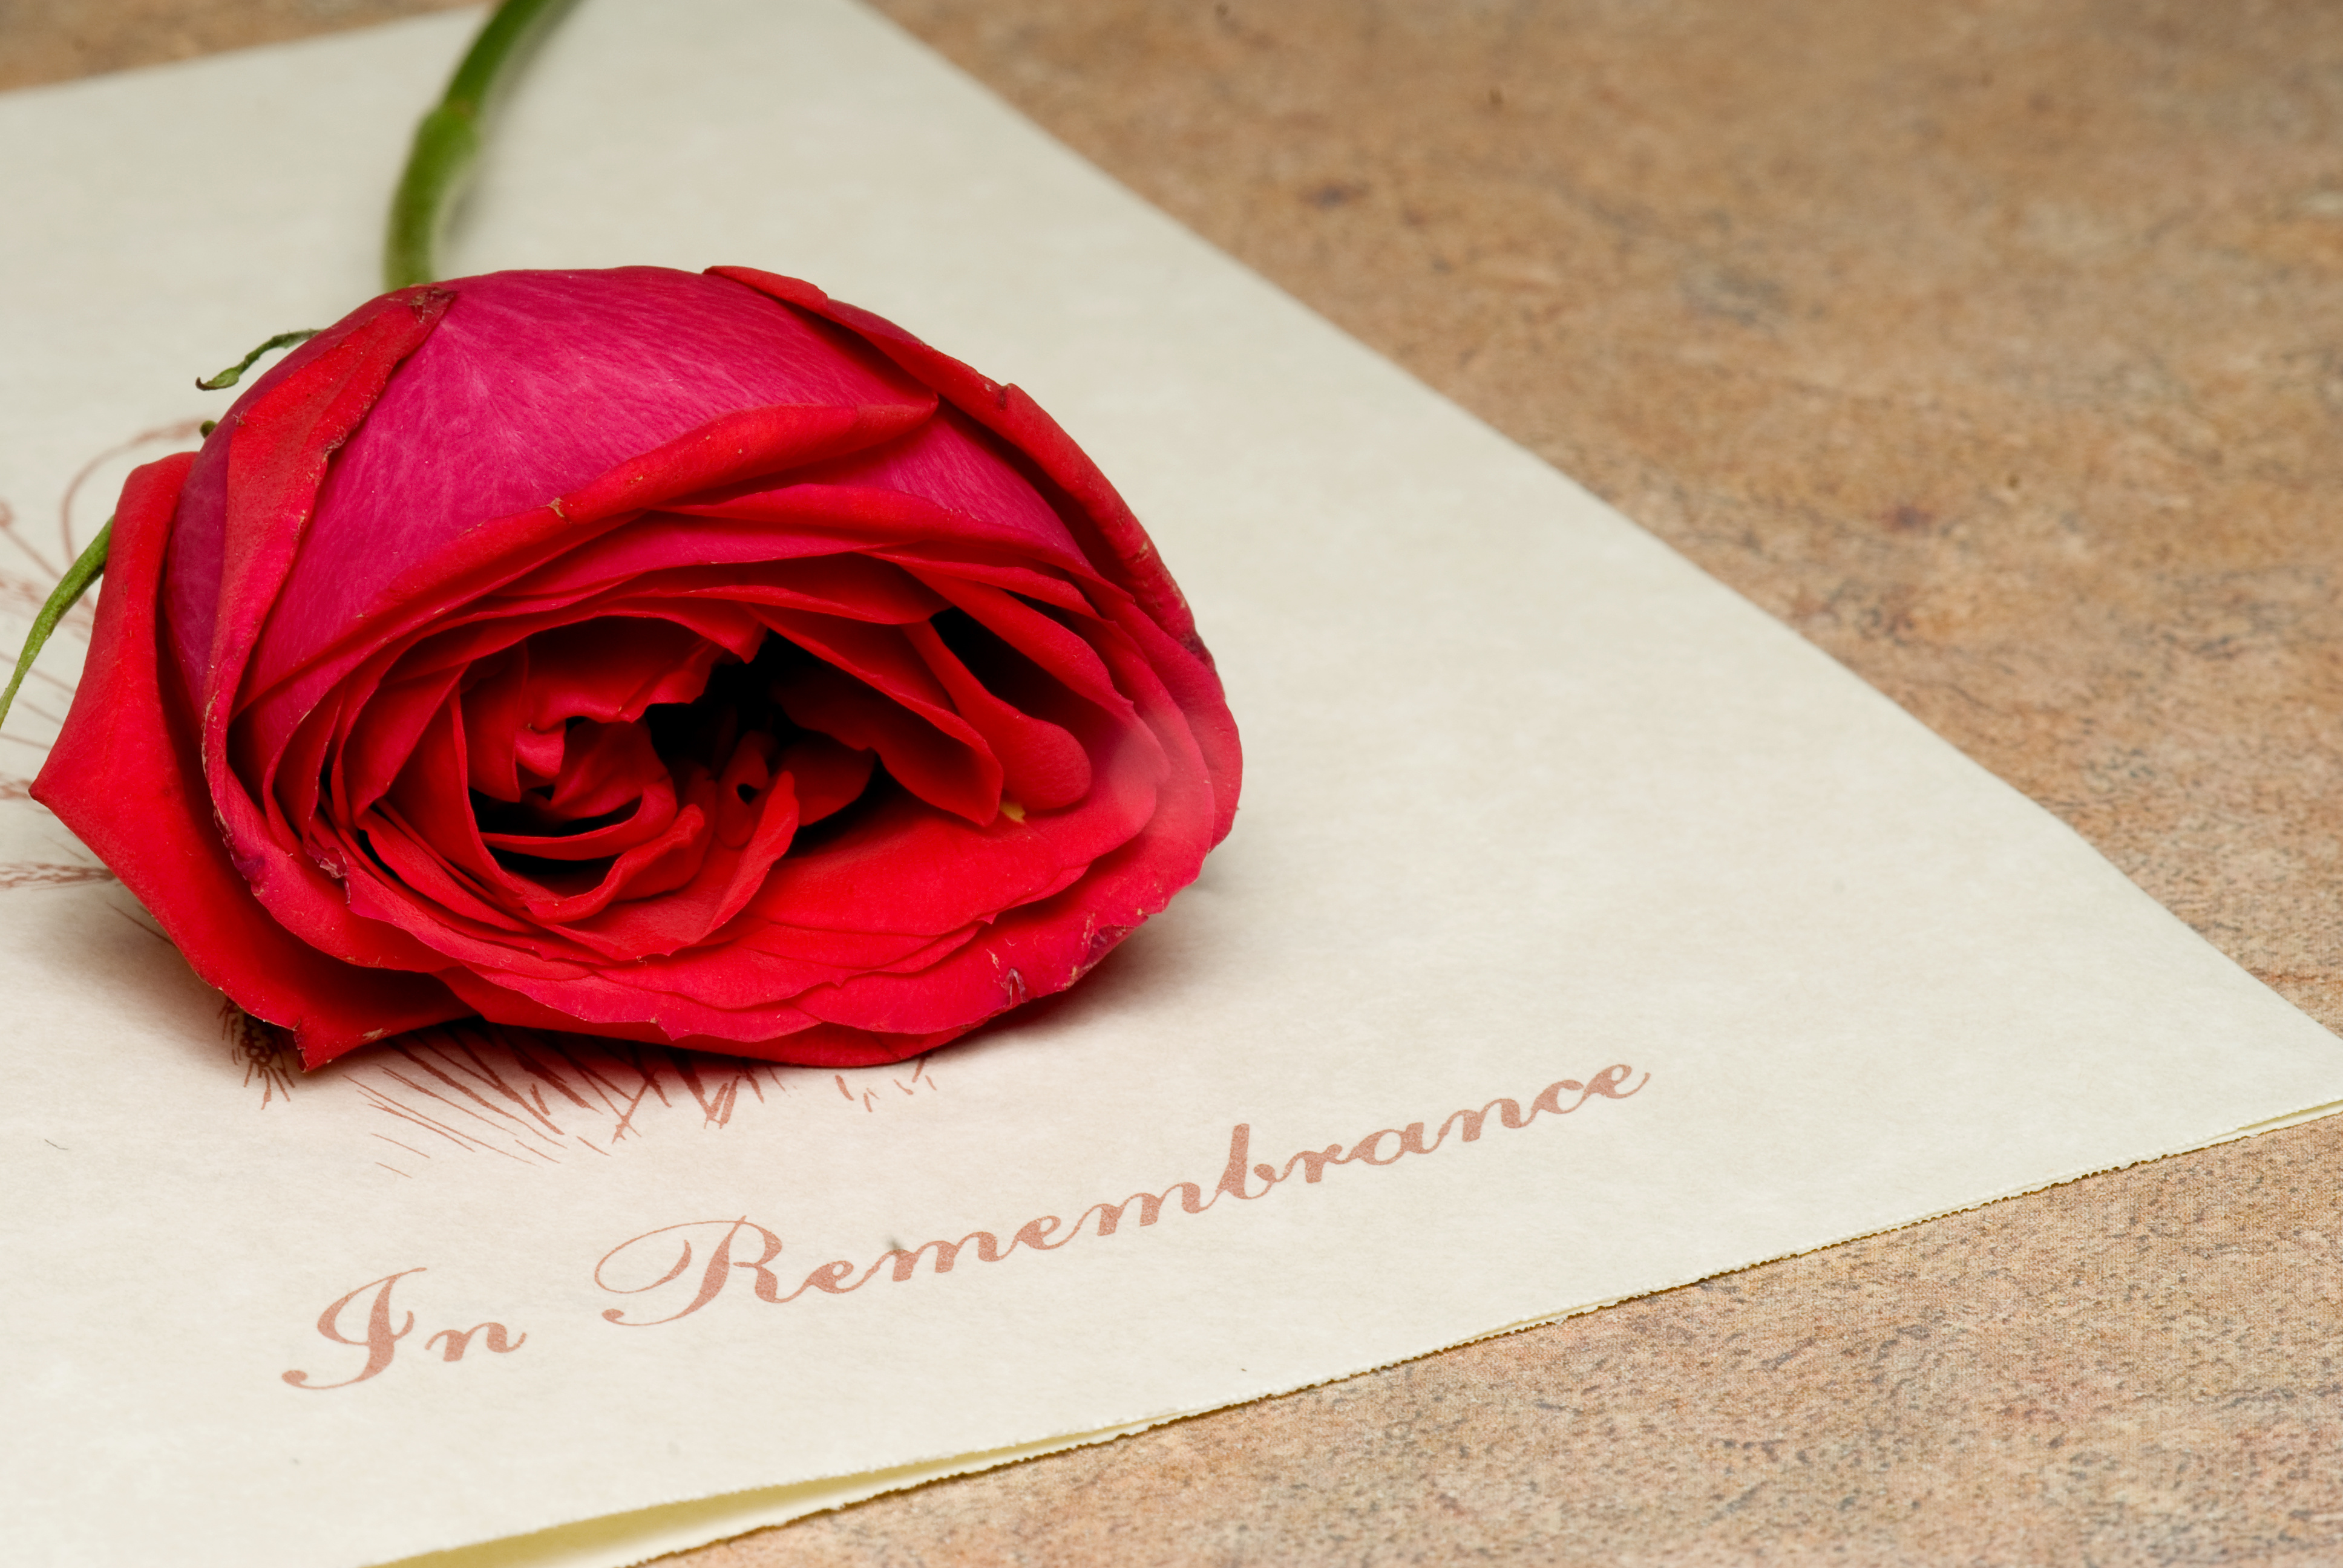 A funeral bulletin with a single red rose.